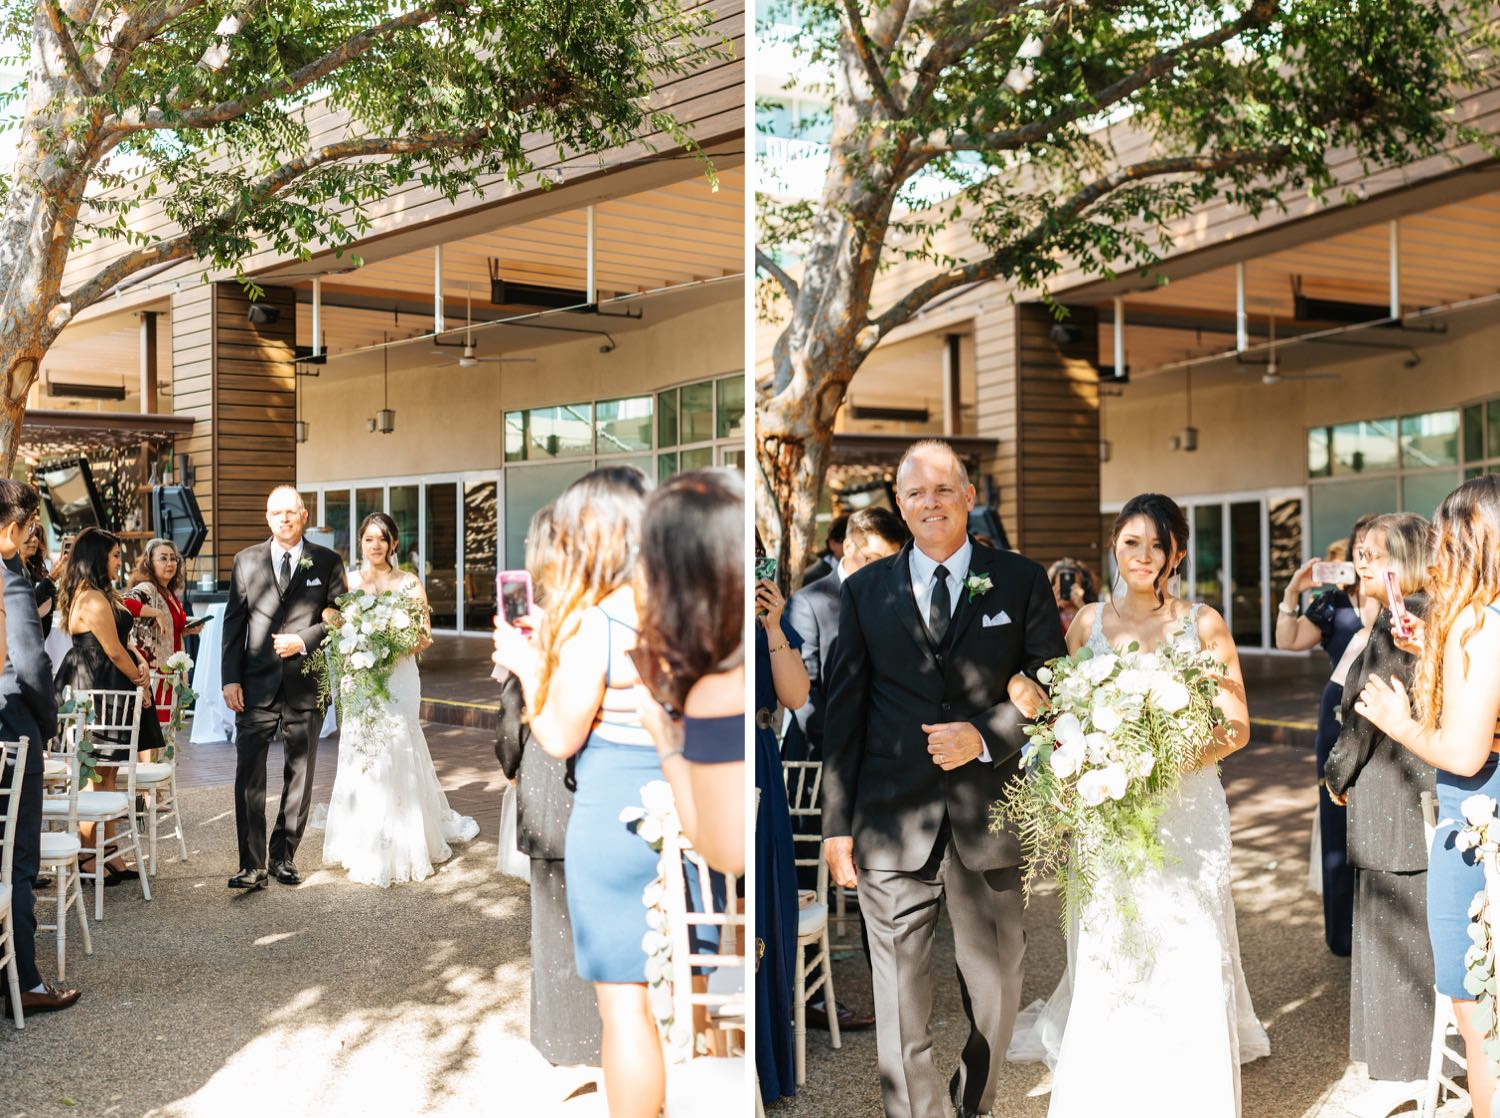 Bride walking down the aisle - LA Wedding - https://brittneyhannonphotography.com